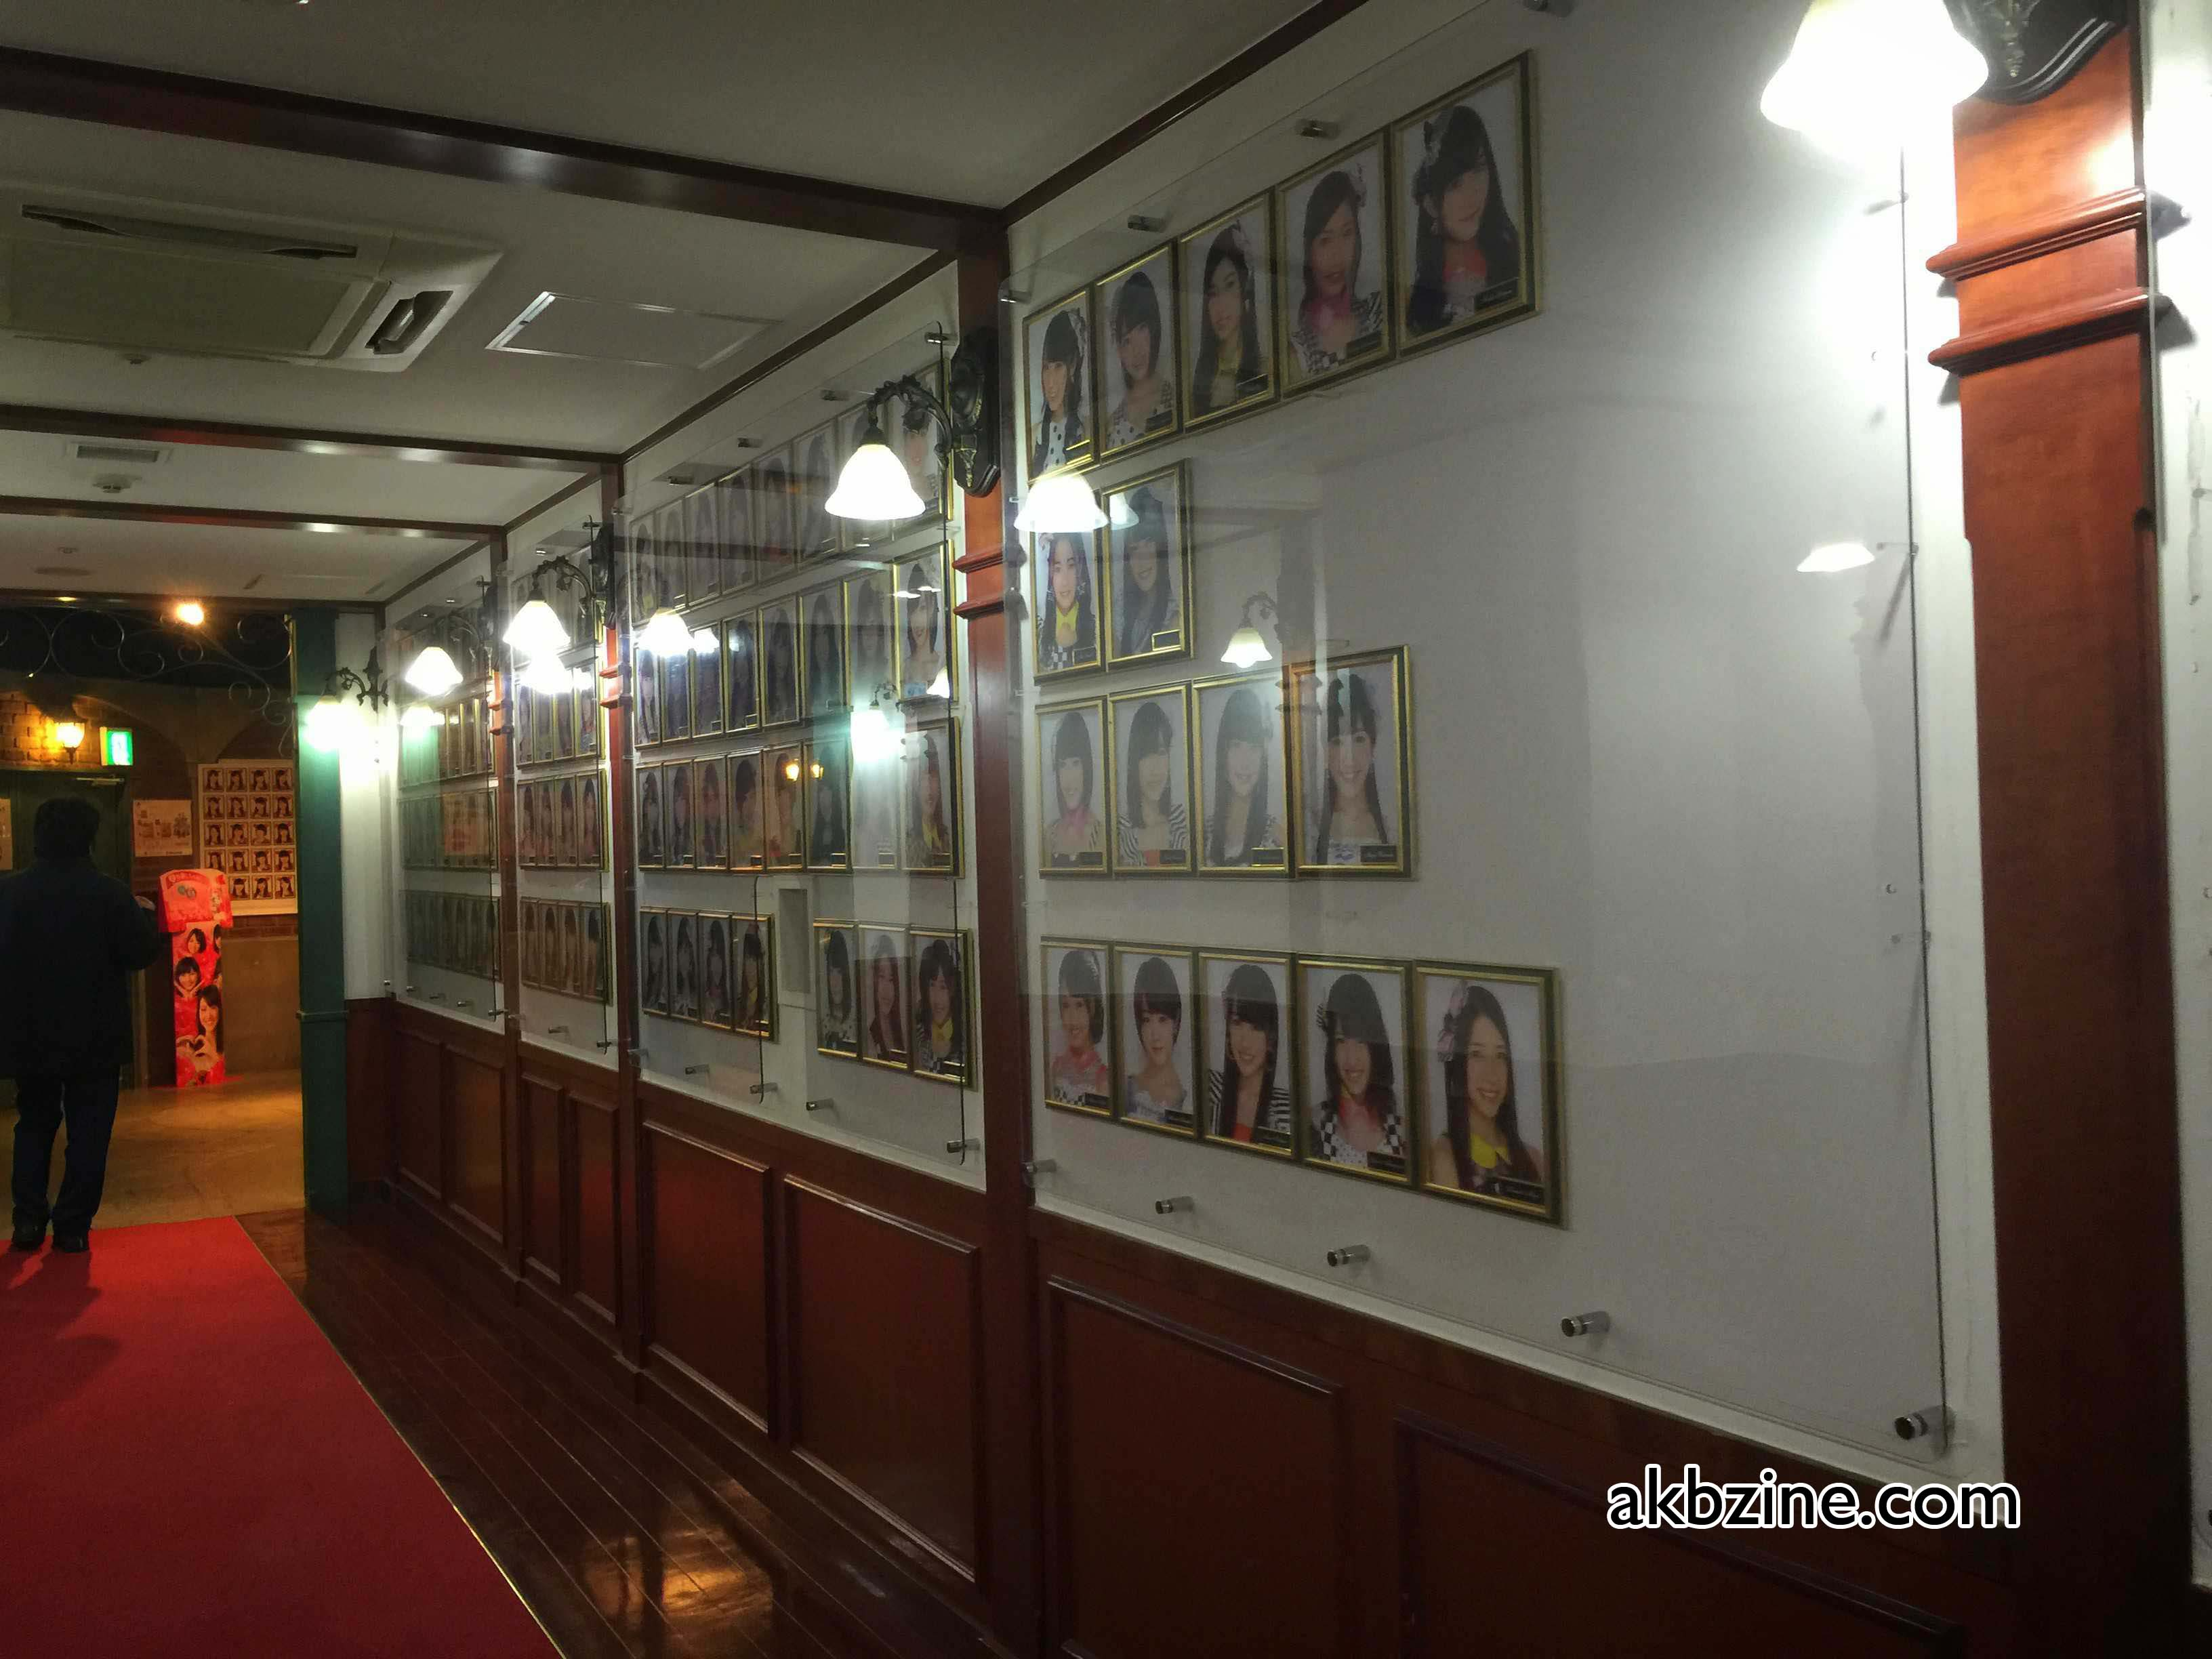 The hallway to the AKB48 Theater in Don Quixote